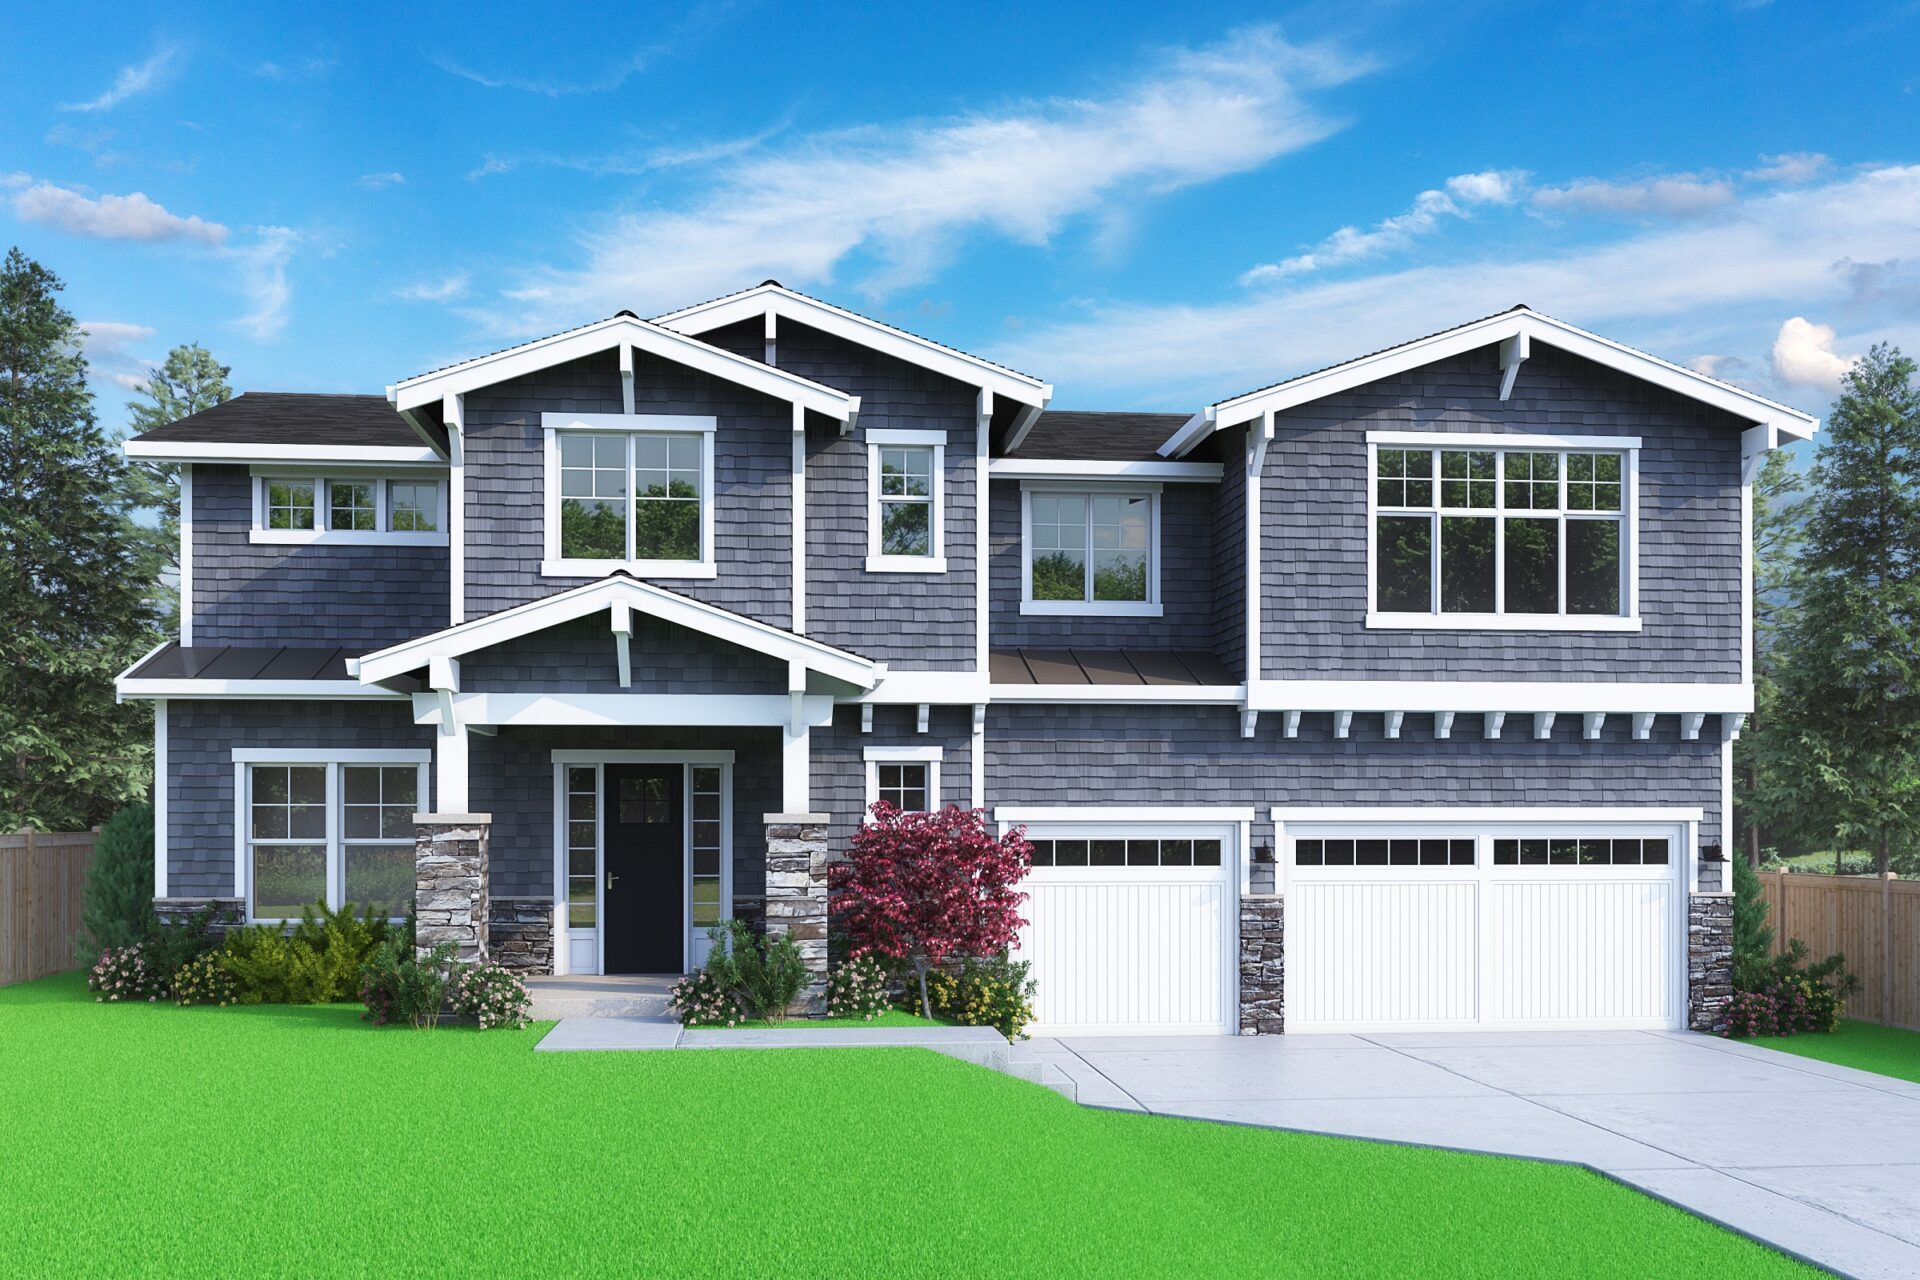 View our new luxury home construction on 11413 109th Ave NE, in Kirkland, WA from MN Custom Homes